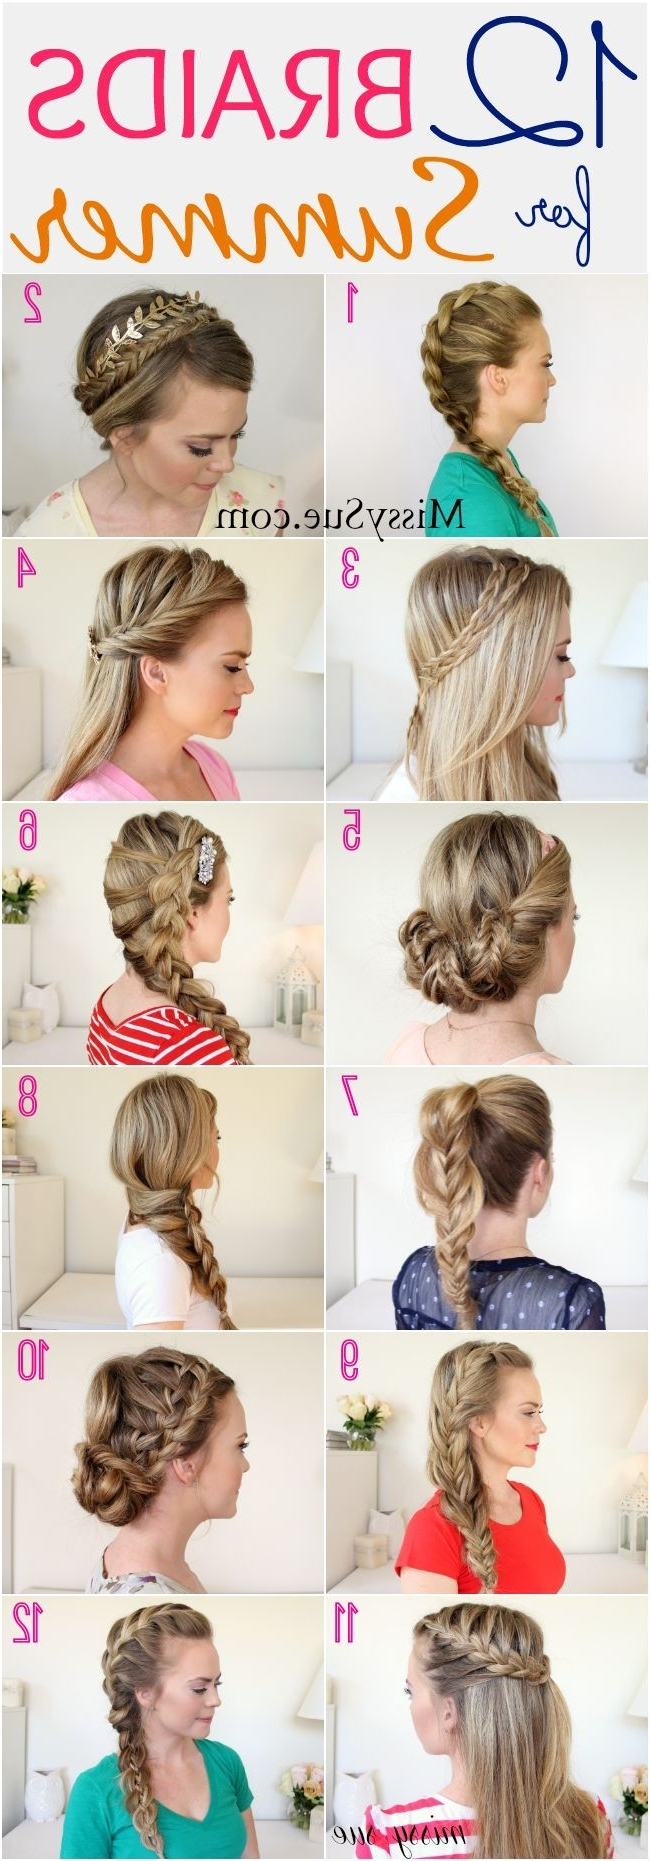 26 Pretty Braided Hairstyle For Summer – Popular Haircuts Intended For Latest Thick And Luscious Braid Hairstyles (View 13 of 20)